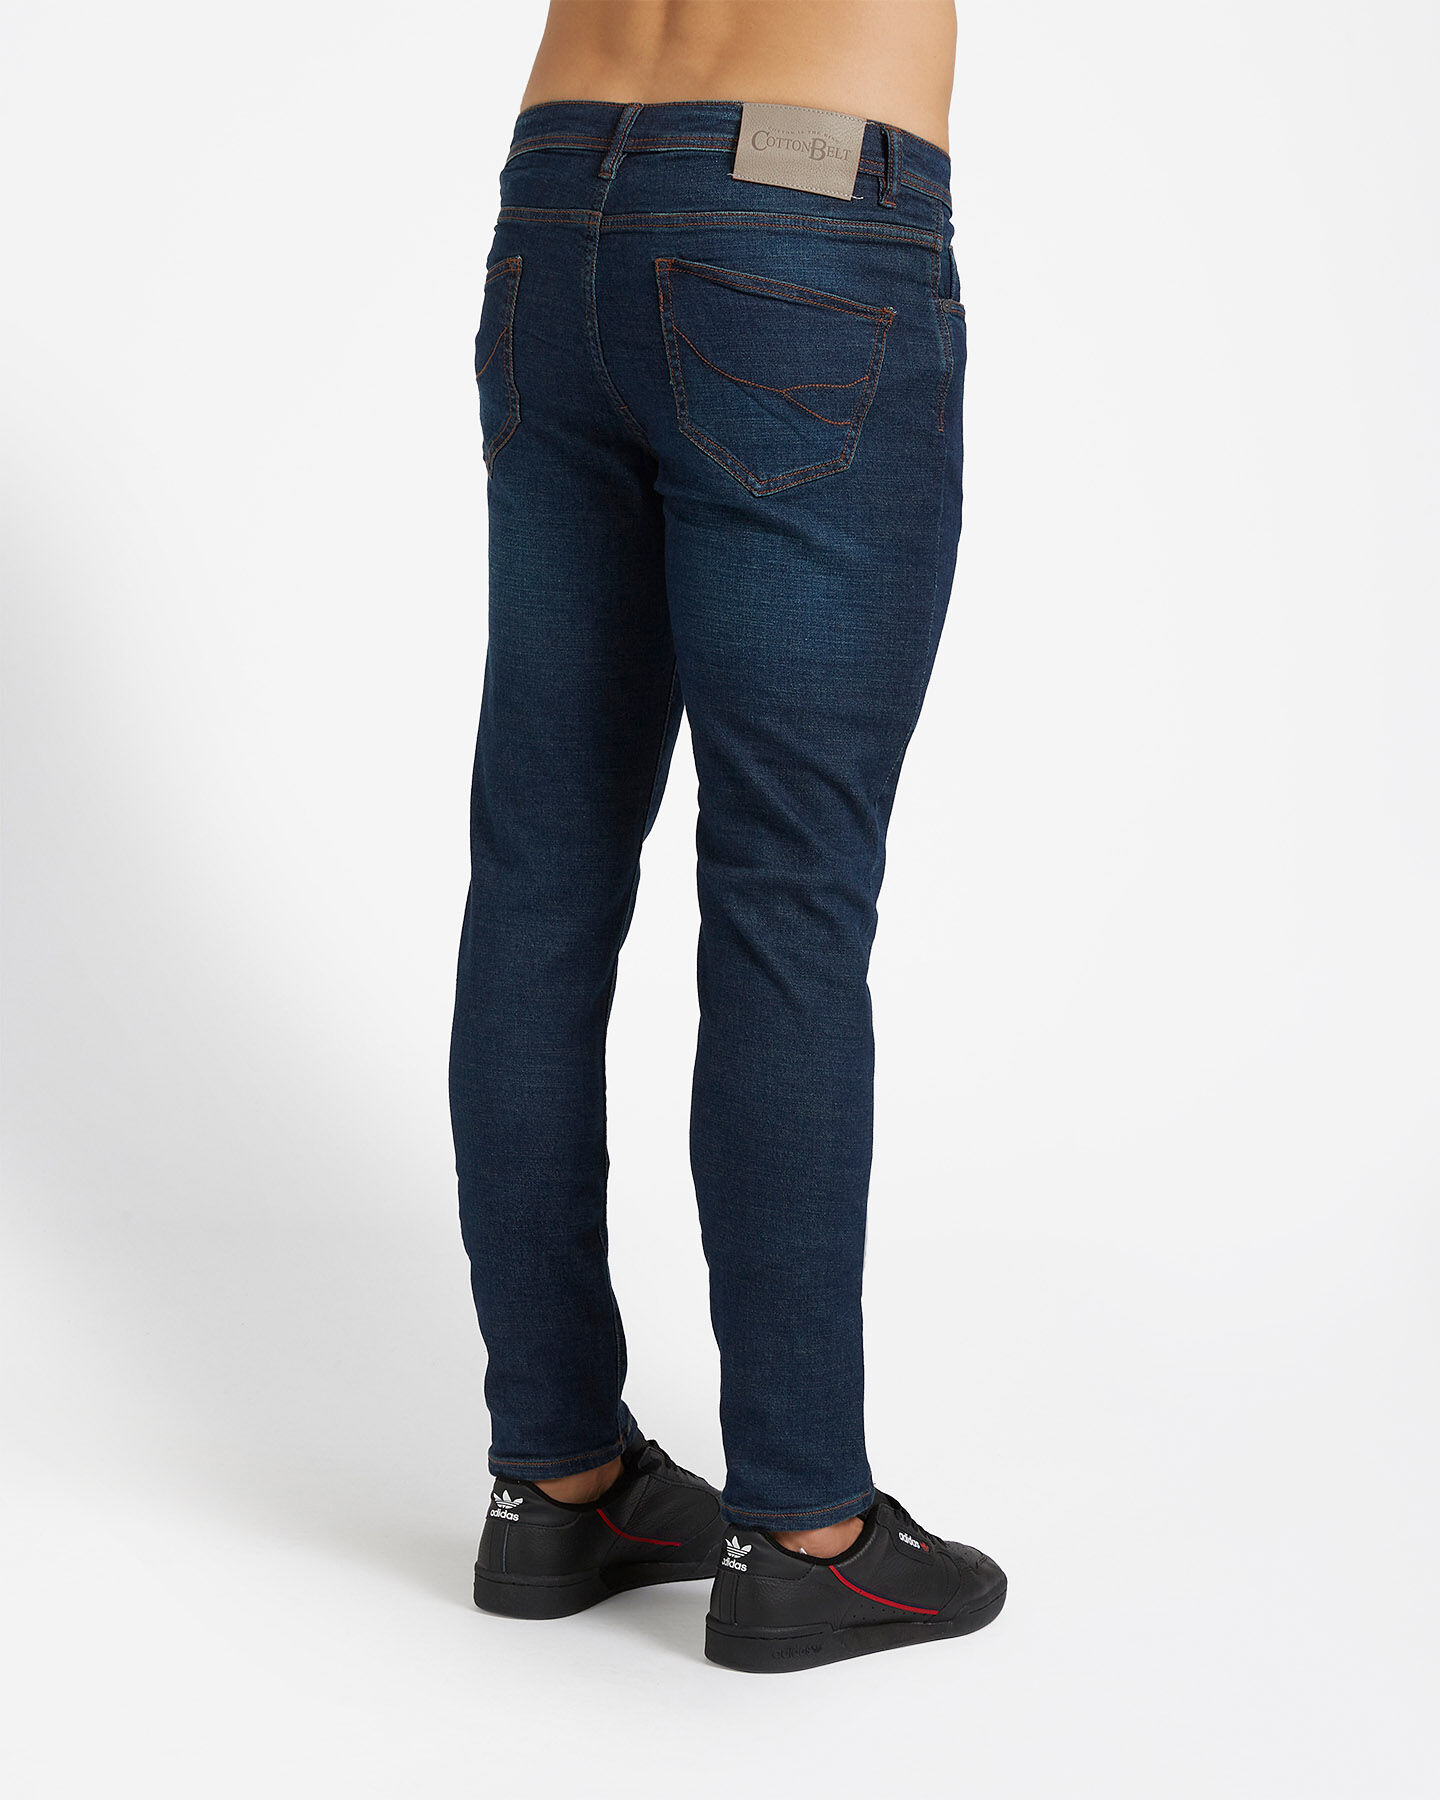 Jeans COTTON BELT 5TS SLIM M S4076650 scatto 1